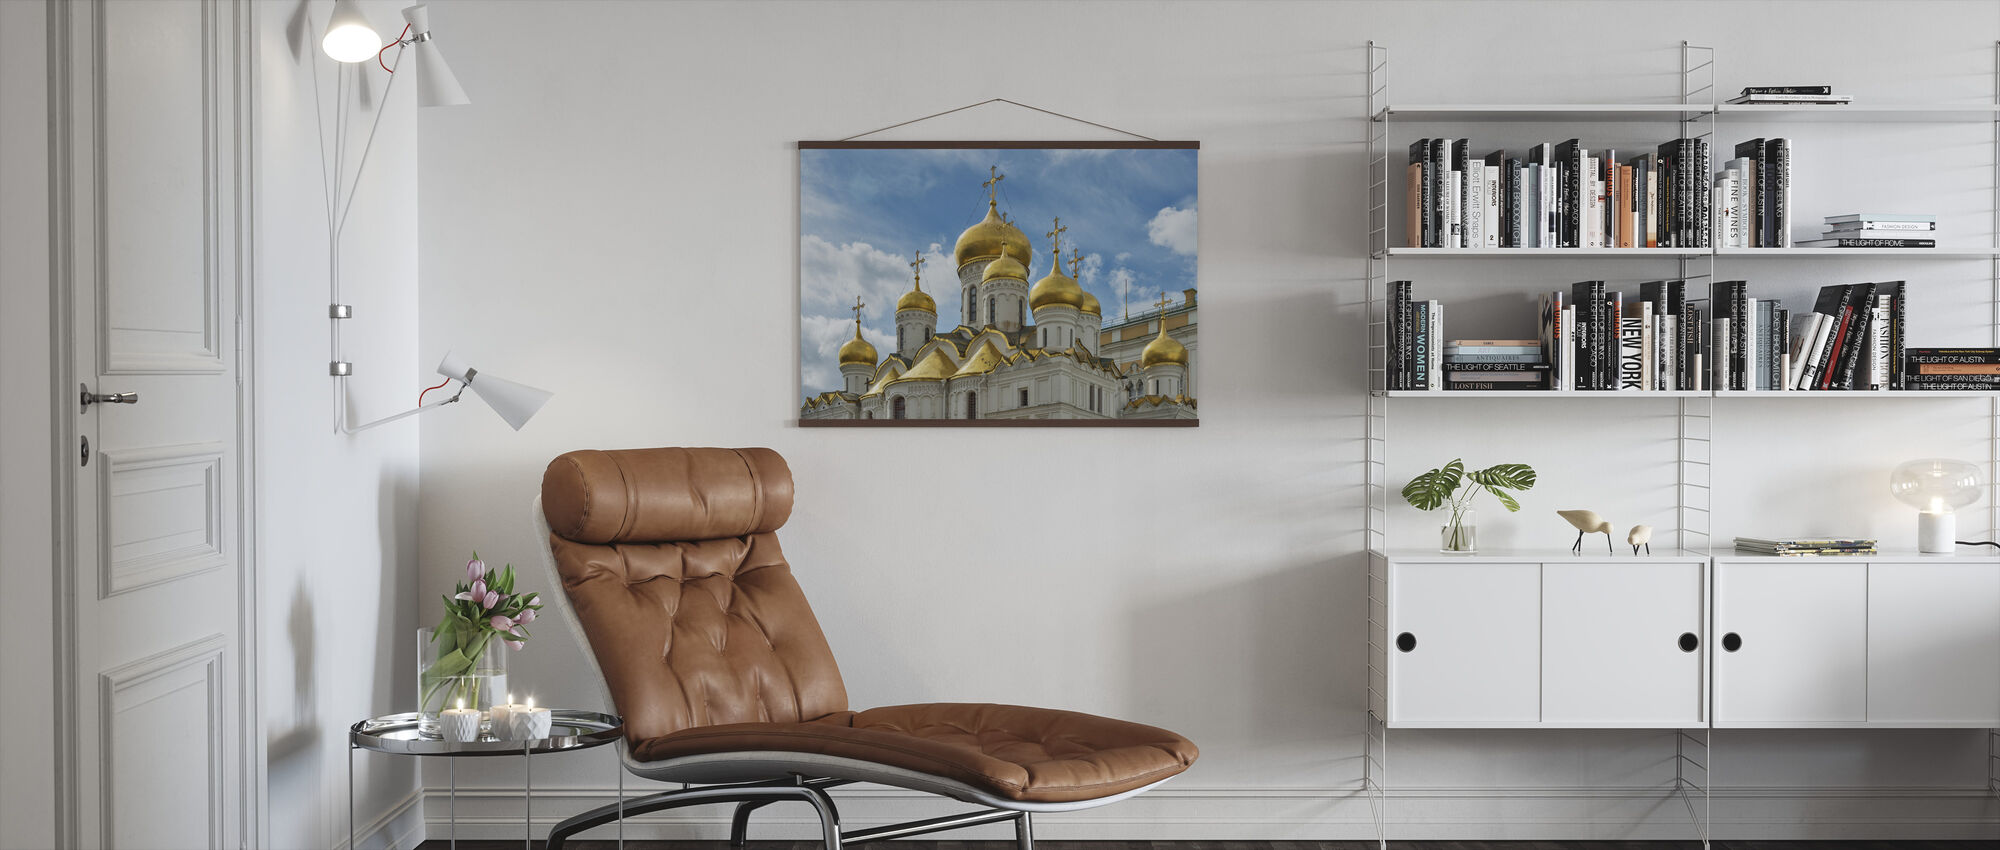 The Cathedral of the Annunciation - Poster - Living Room